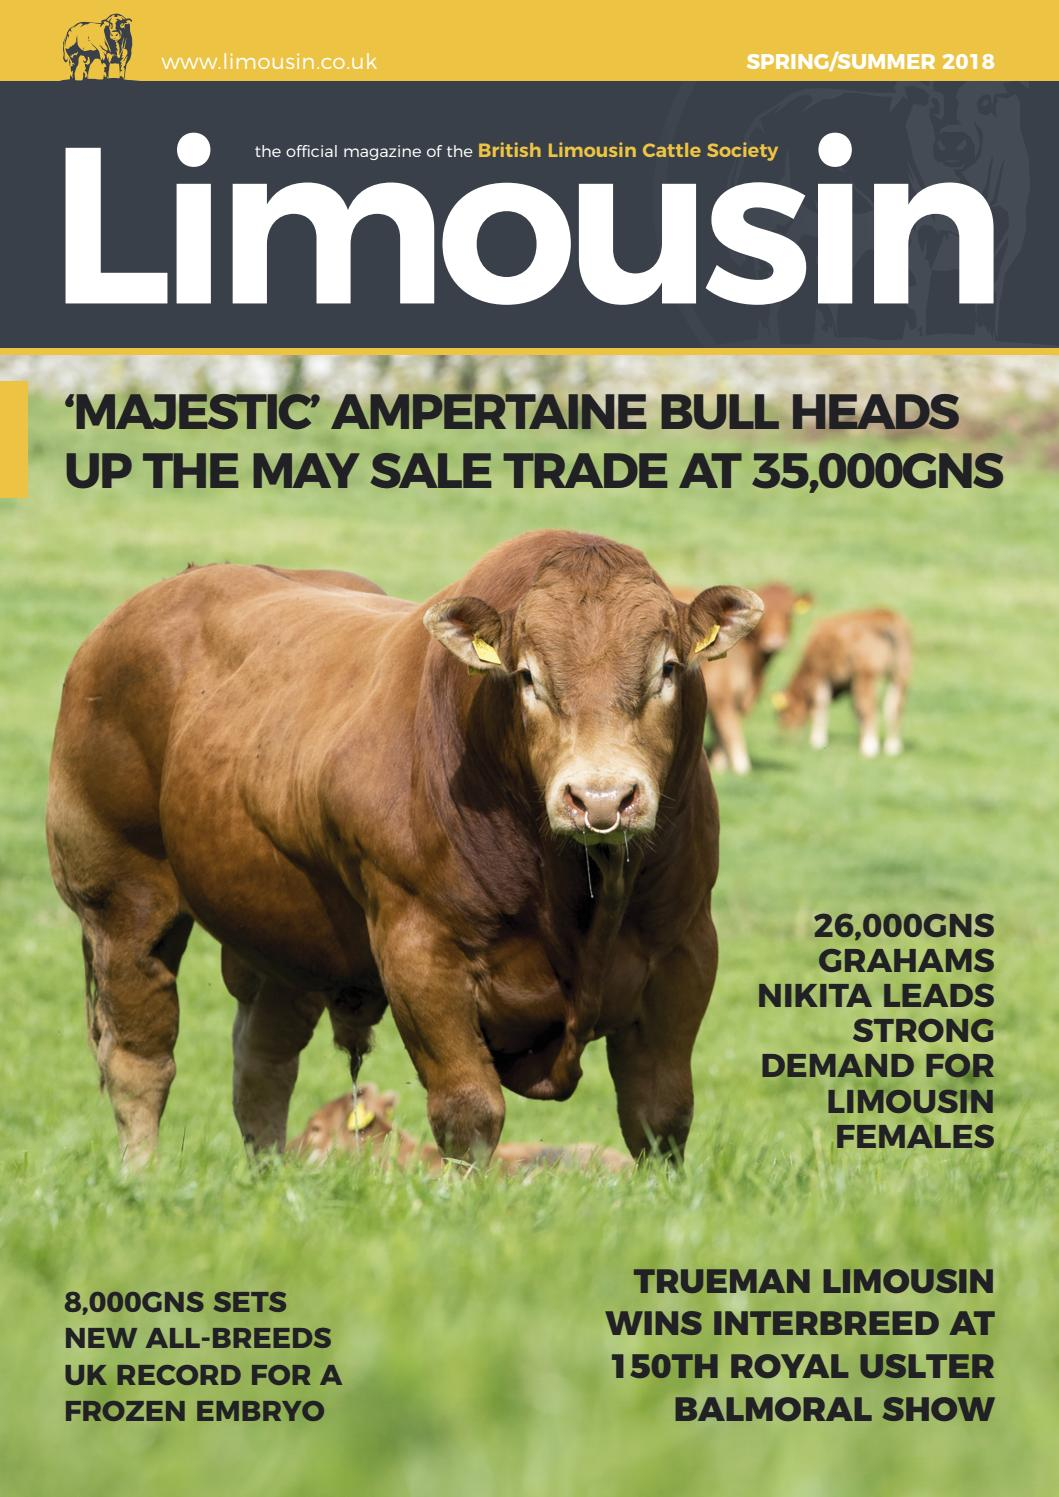 BLCS Spring 2018 Magazine by British Limousin Cattle Society - issuu b951d0e3a5